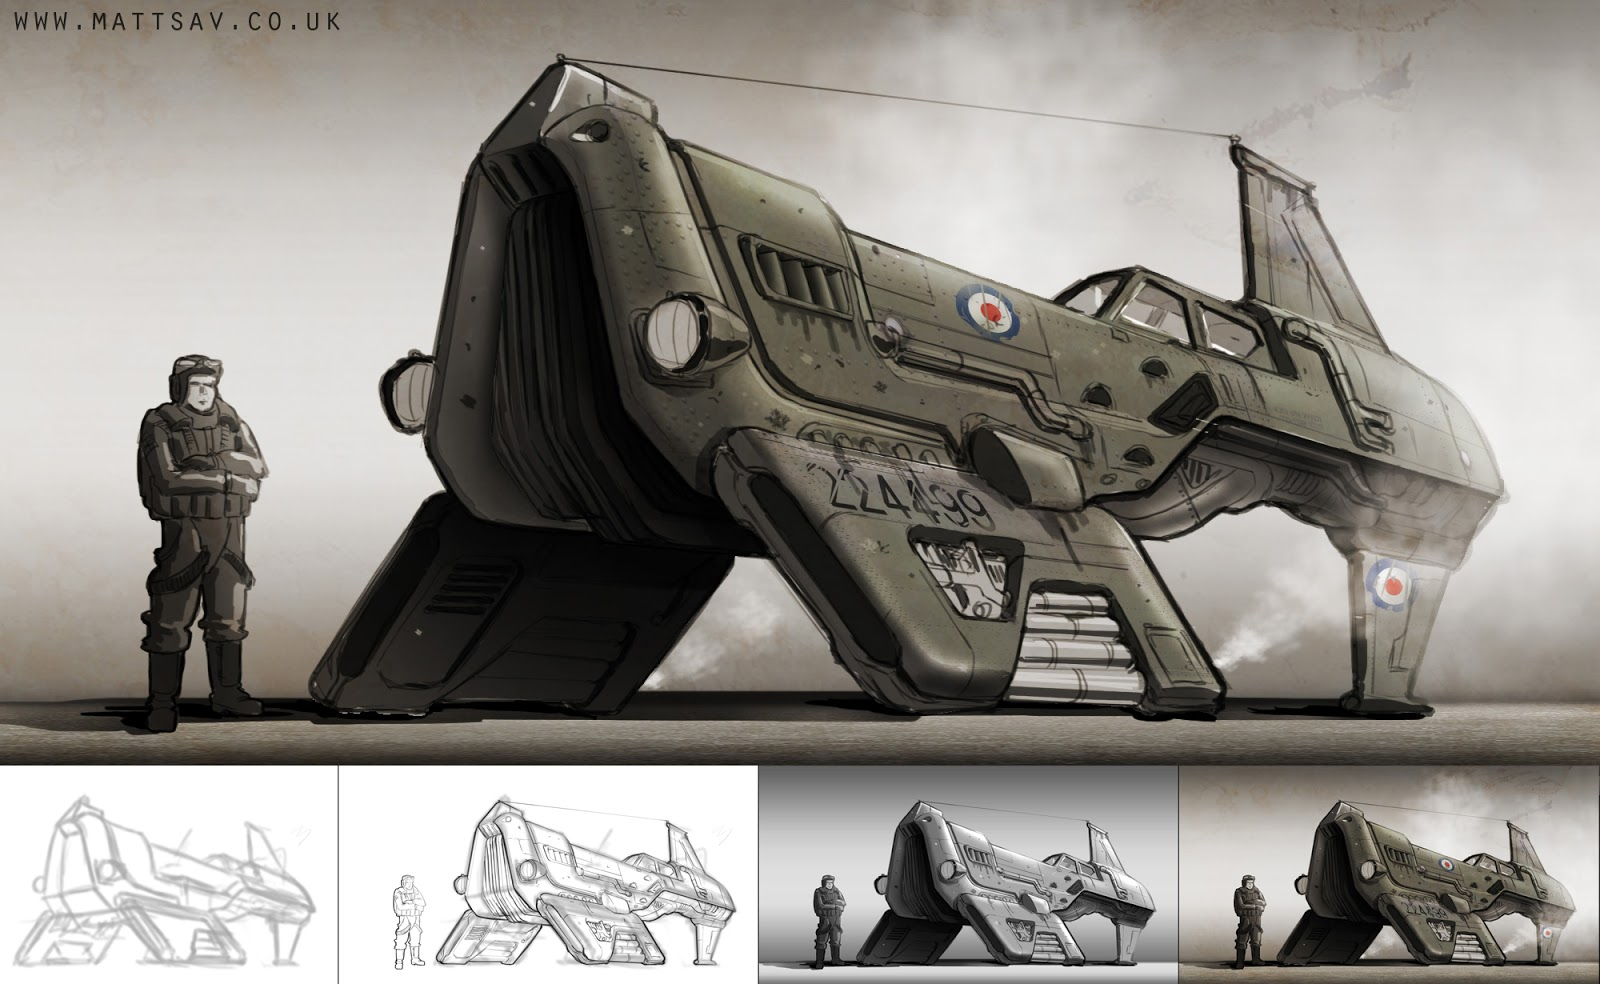 Fighter Plane Concept Art by Matt Savage